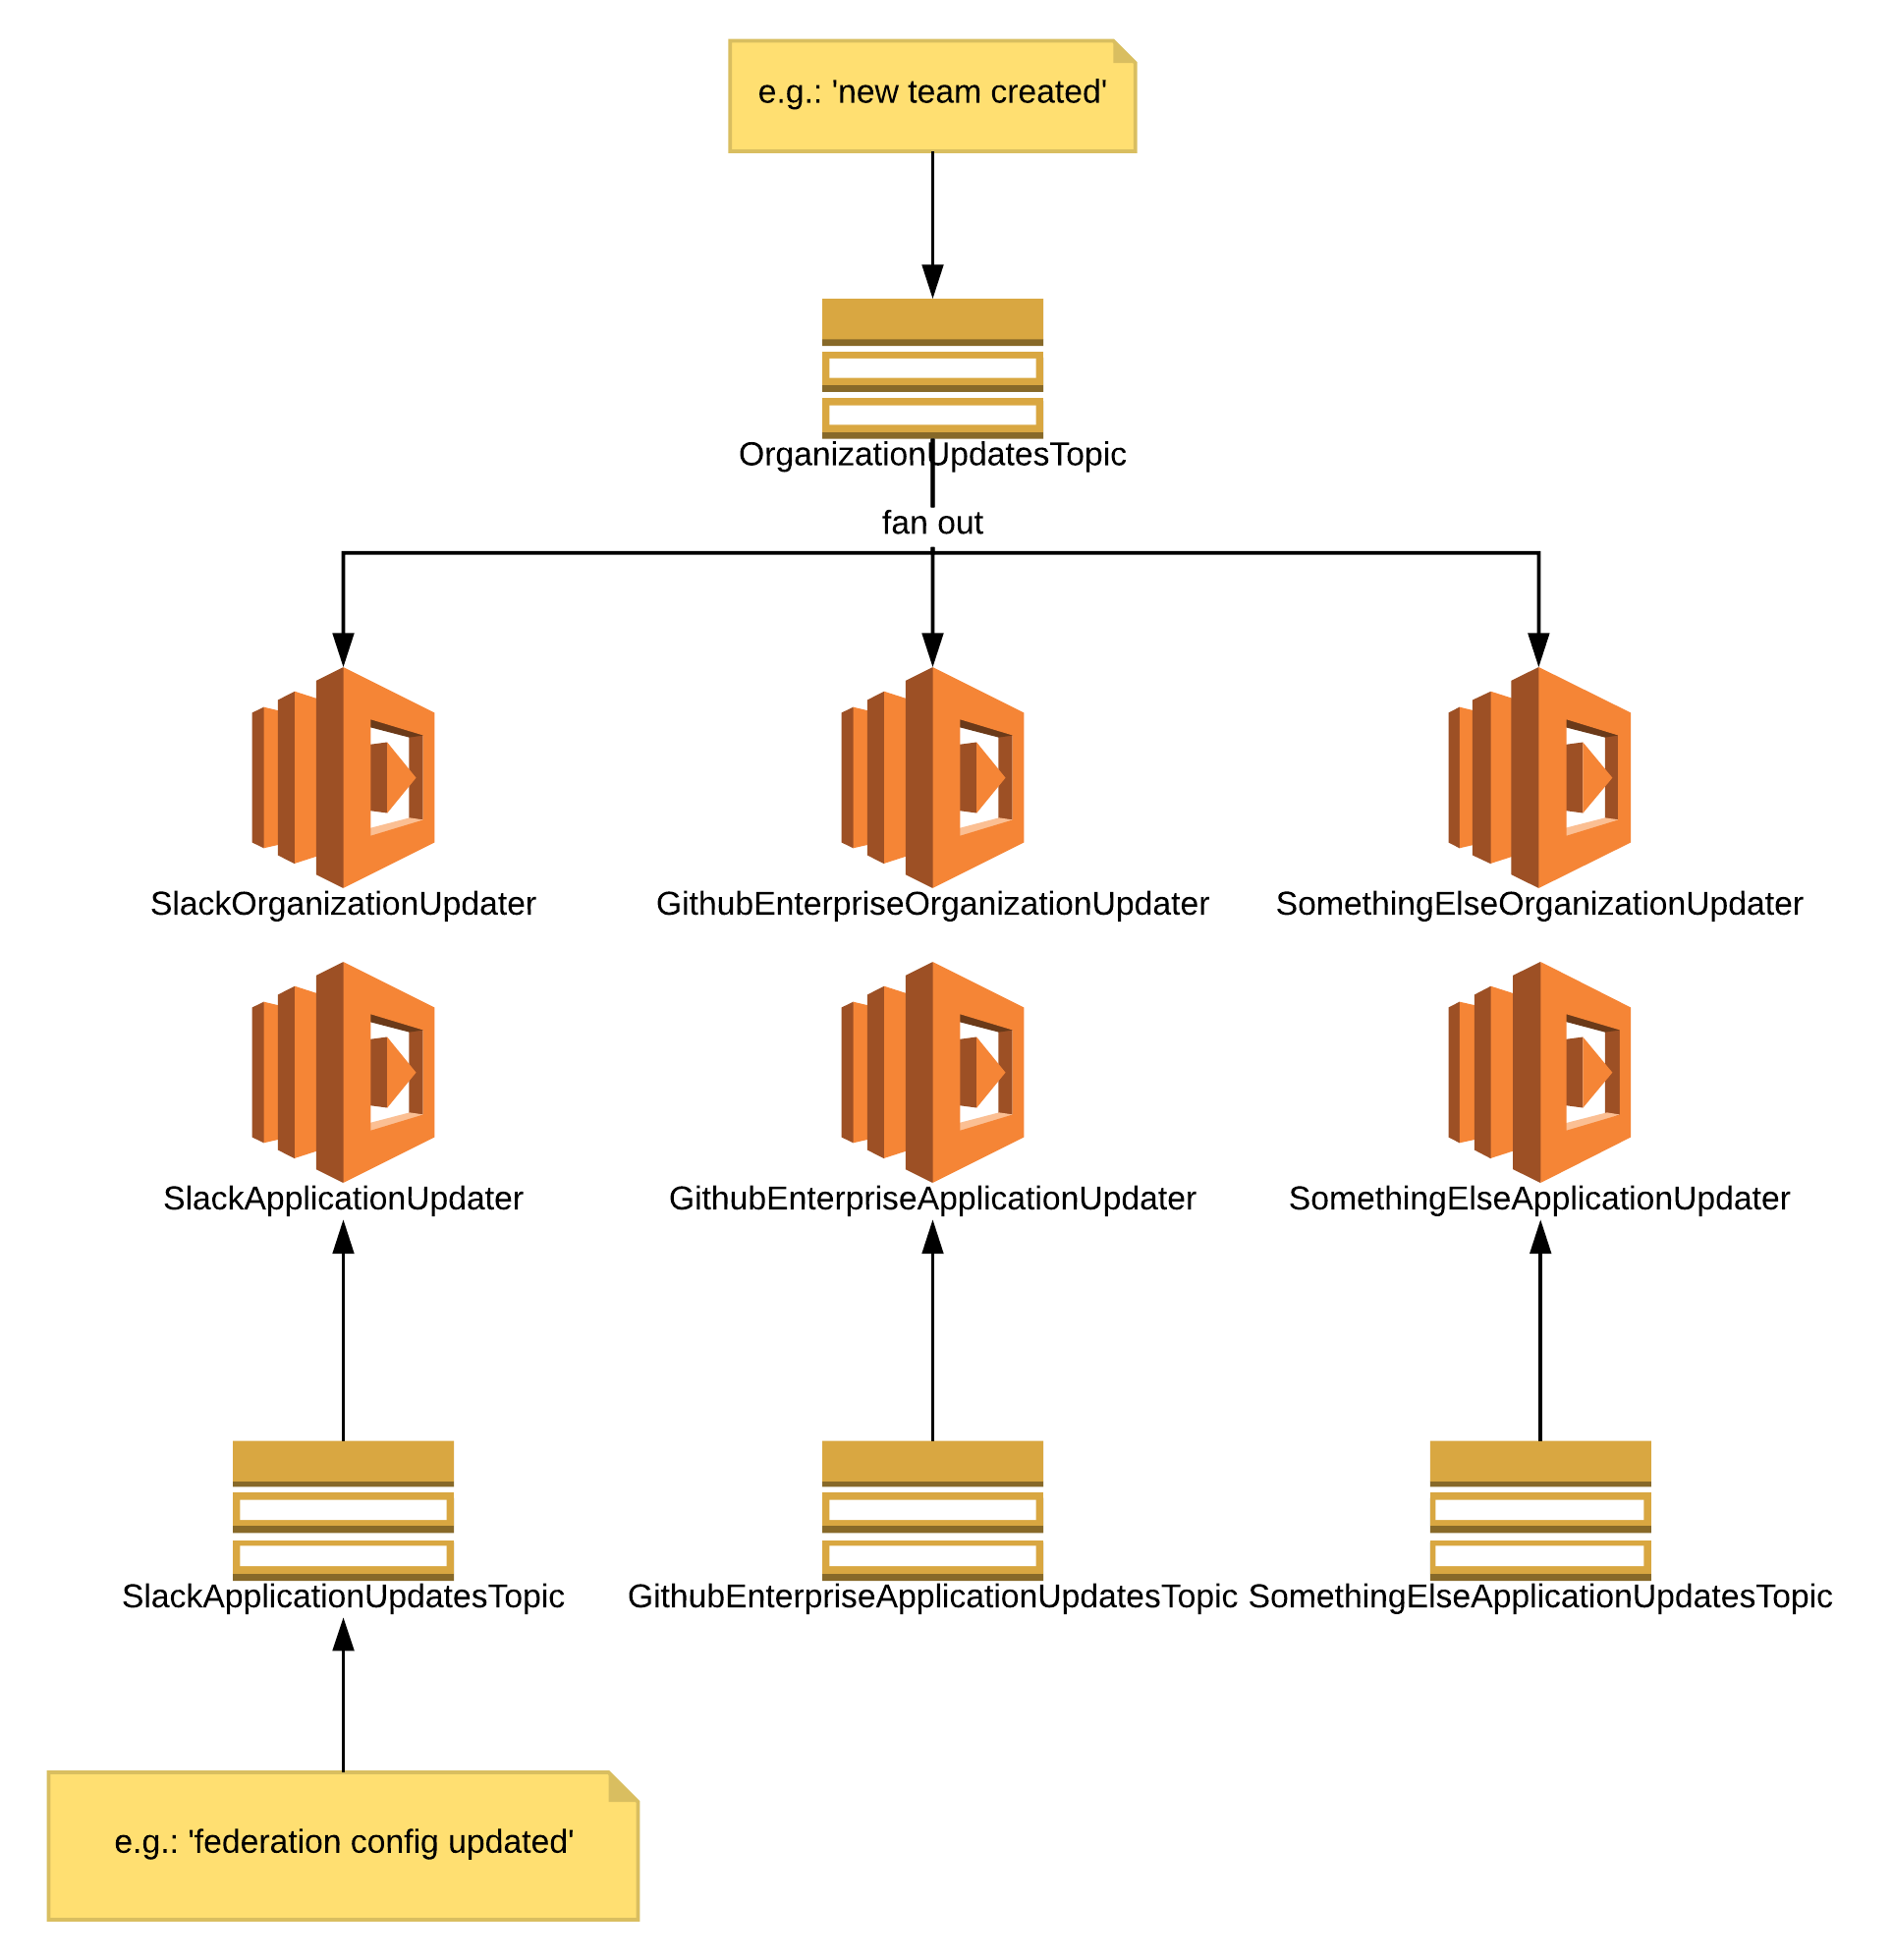 Use-case architecture layout